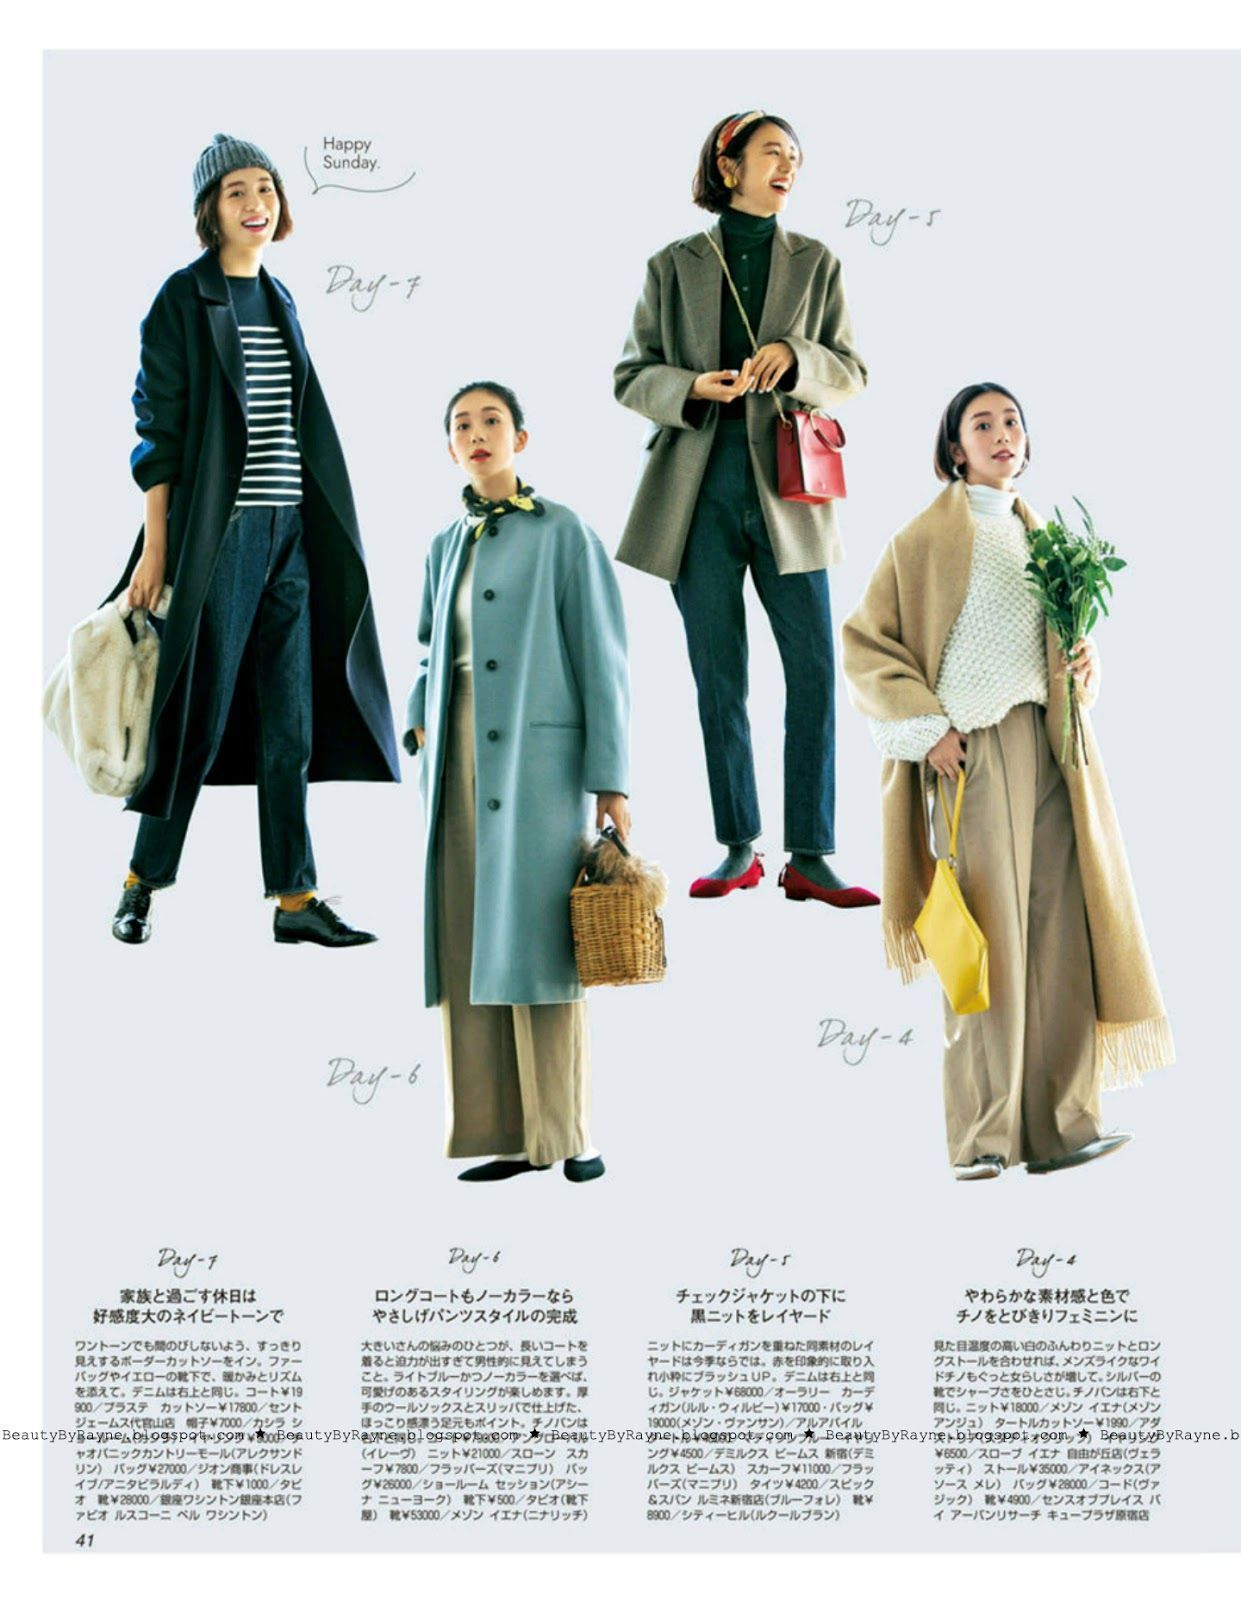 japanese fashion #fashion Lee January 2019 Issue, Free Japanese Fashion Magazine Scans #japanese fashion editorial